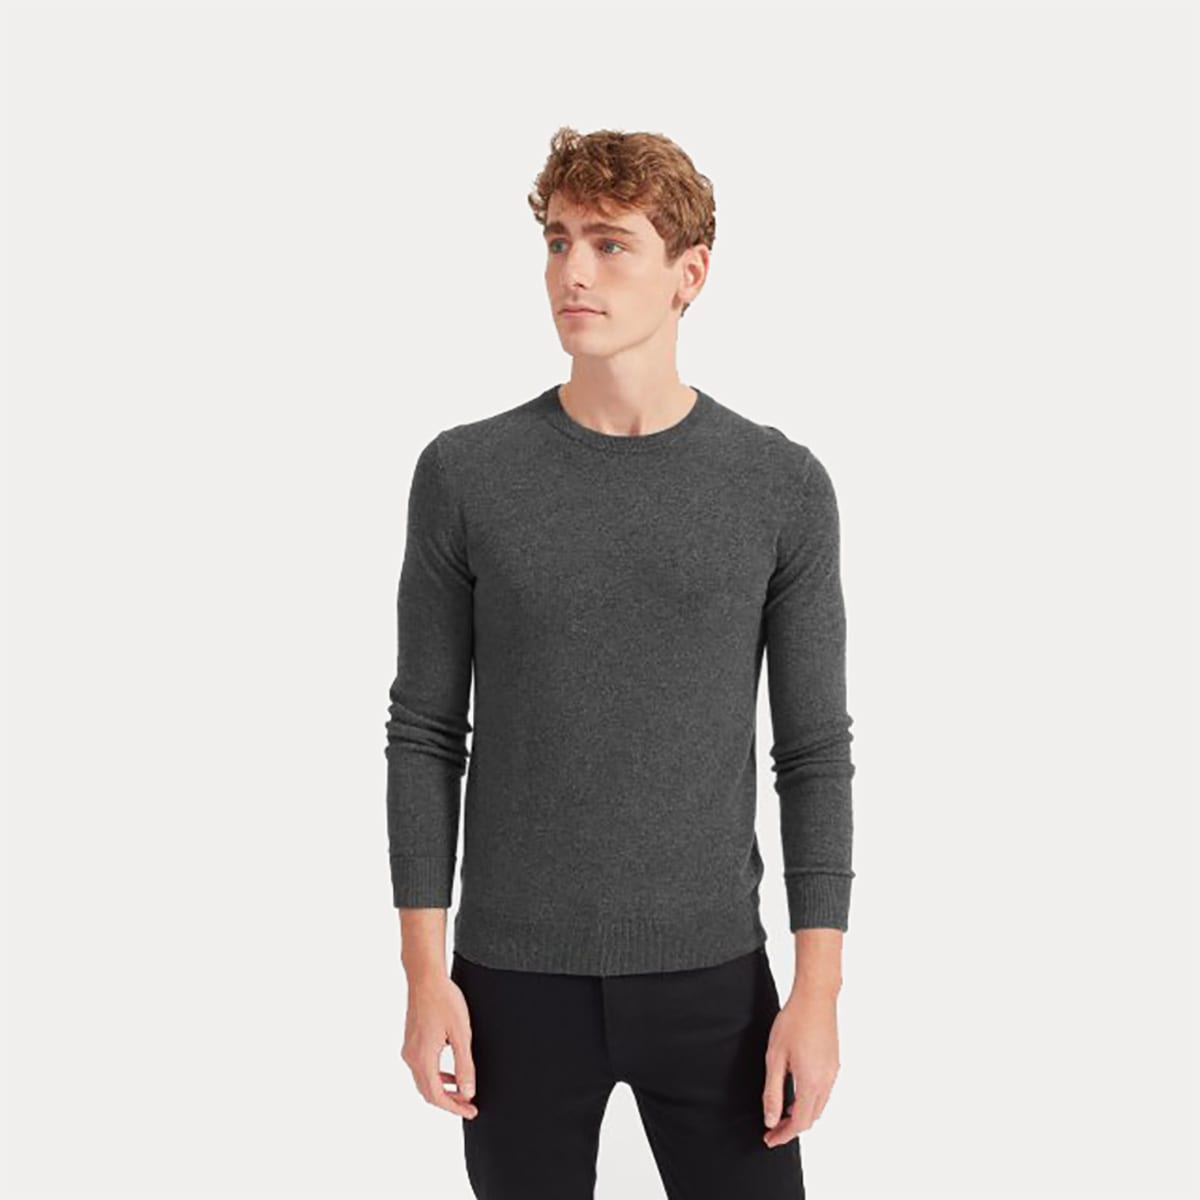 9242c5b11107 The Best Travel Sweaters for Cold Weather Adventures - Tortuga ...